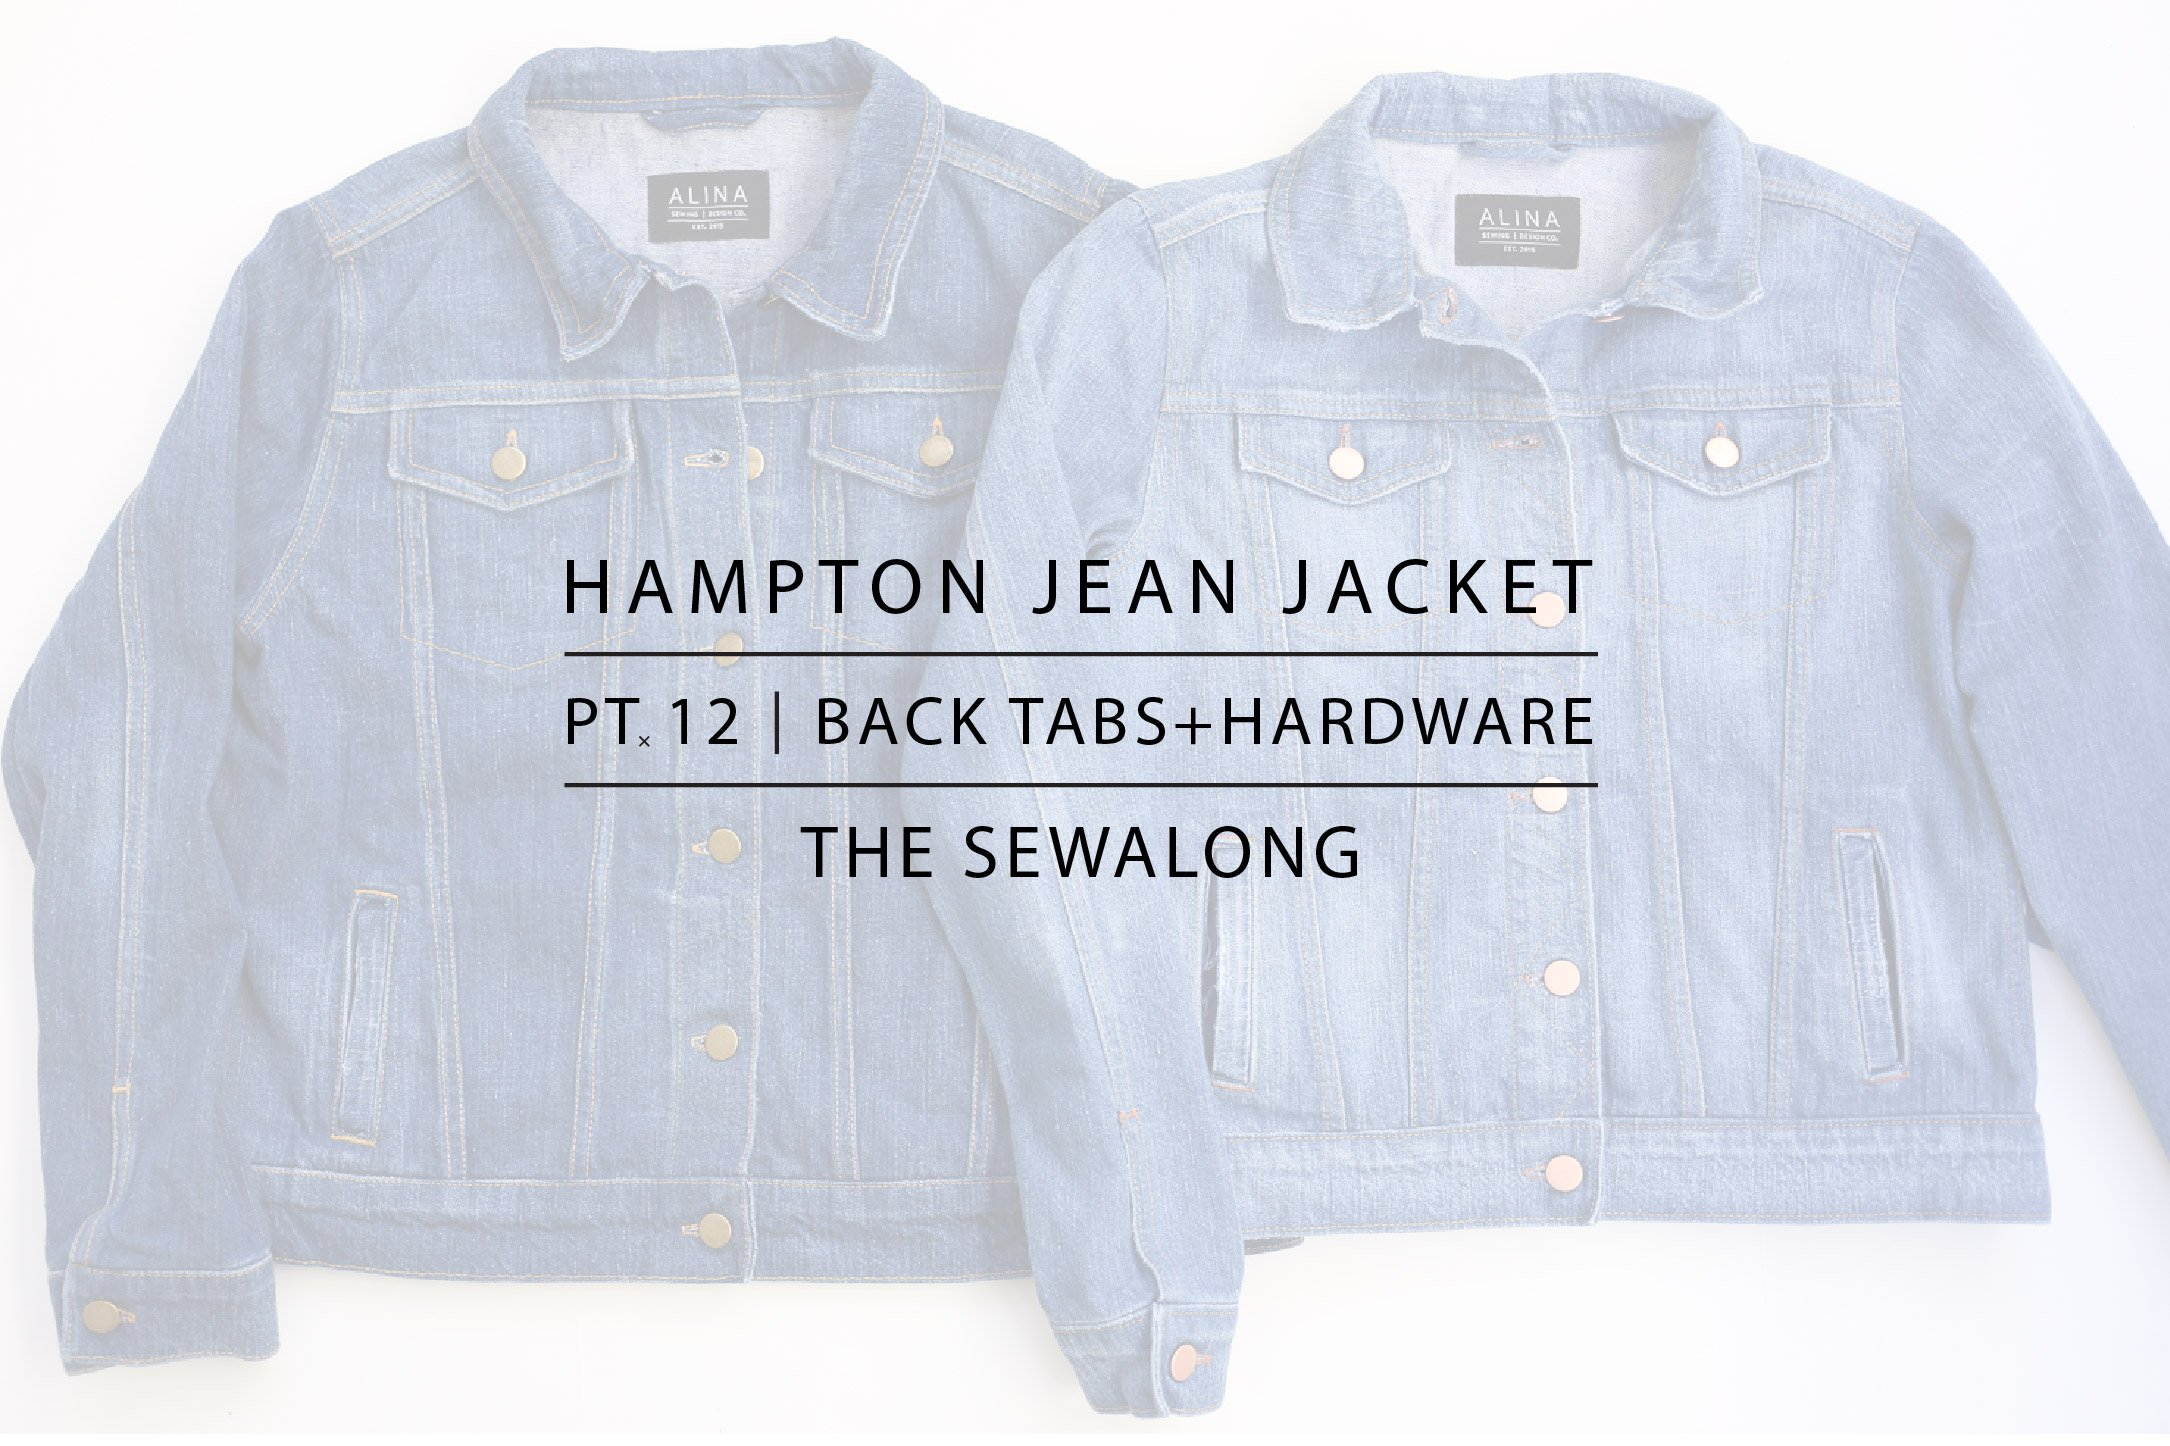 Hampton Jean Jacket Sewalong Pt. 12